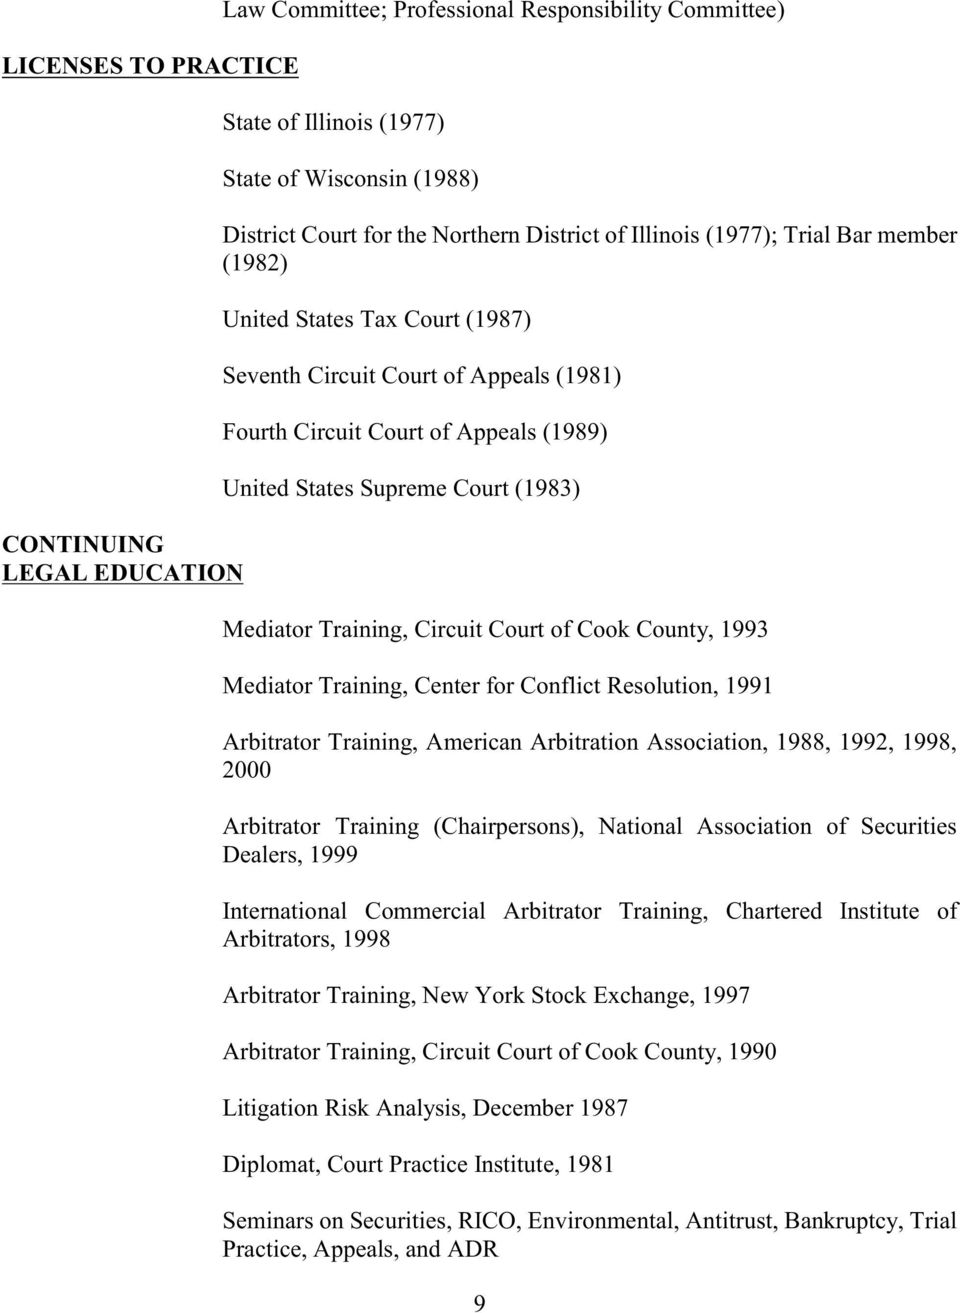 Training, Circuit Court of Cook County, 1993 Mediator Training, Center for Conflict Resolution, 1991 Arbitrator Training, American Arbitration Association, 1988, 1992, 1998, 2000 Arbitrator Training